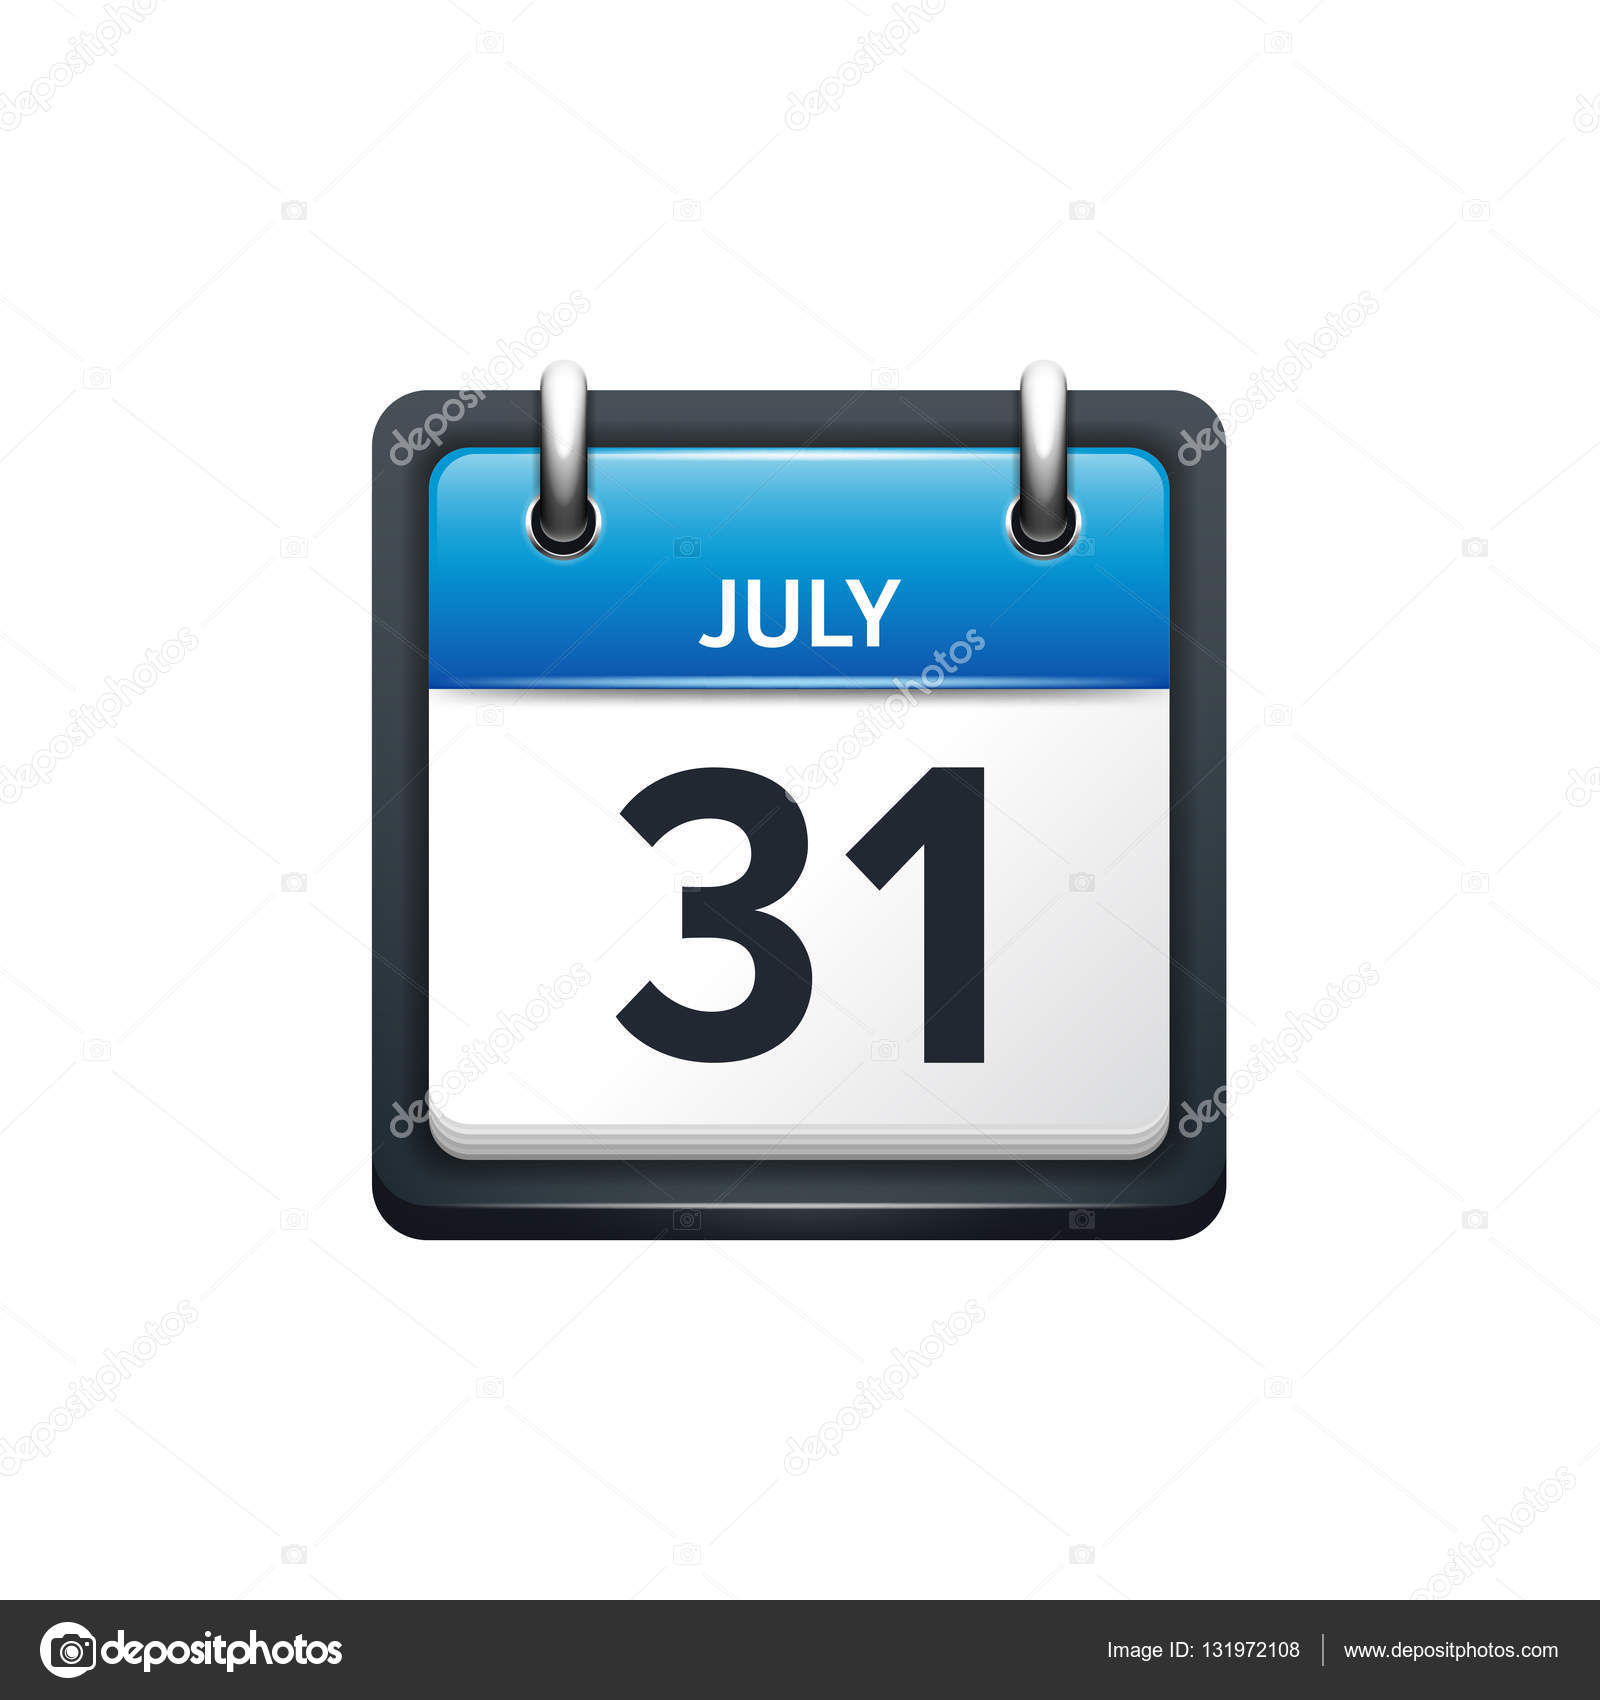 July Calendar IconVector Illustrationflat StyleMonth And Date - 2017 july 31